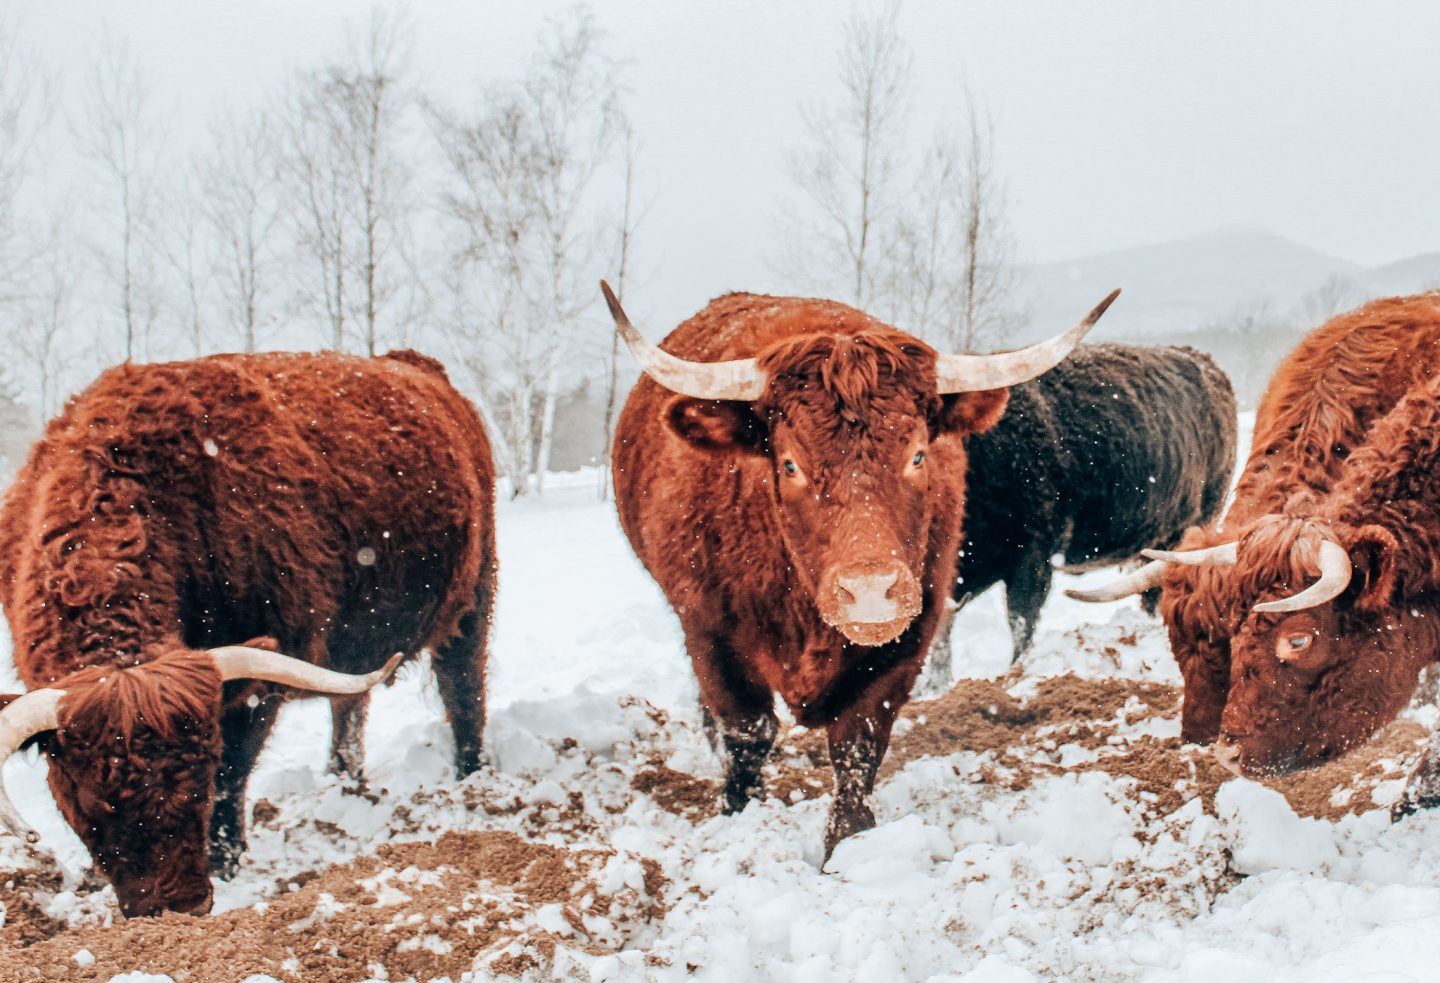 Snowy photo of cows